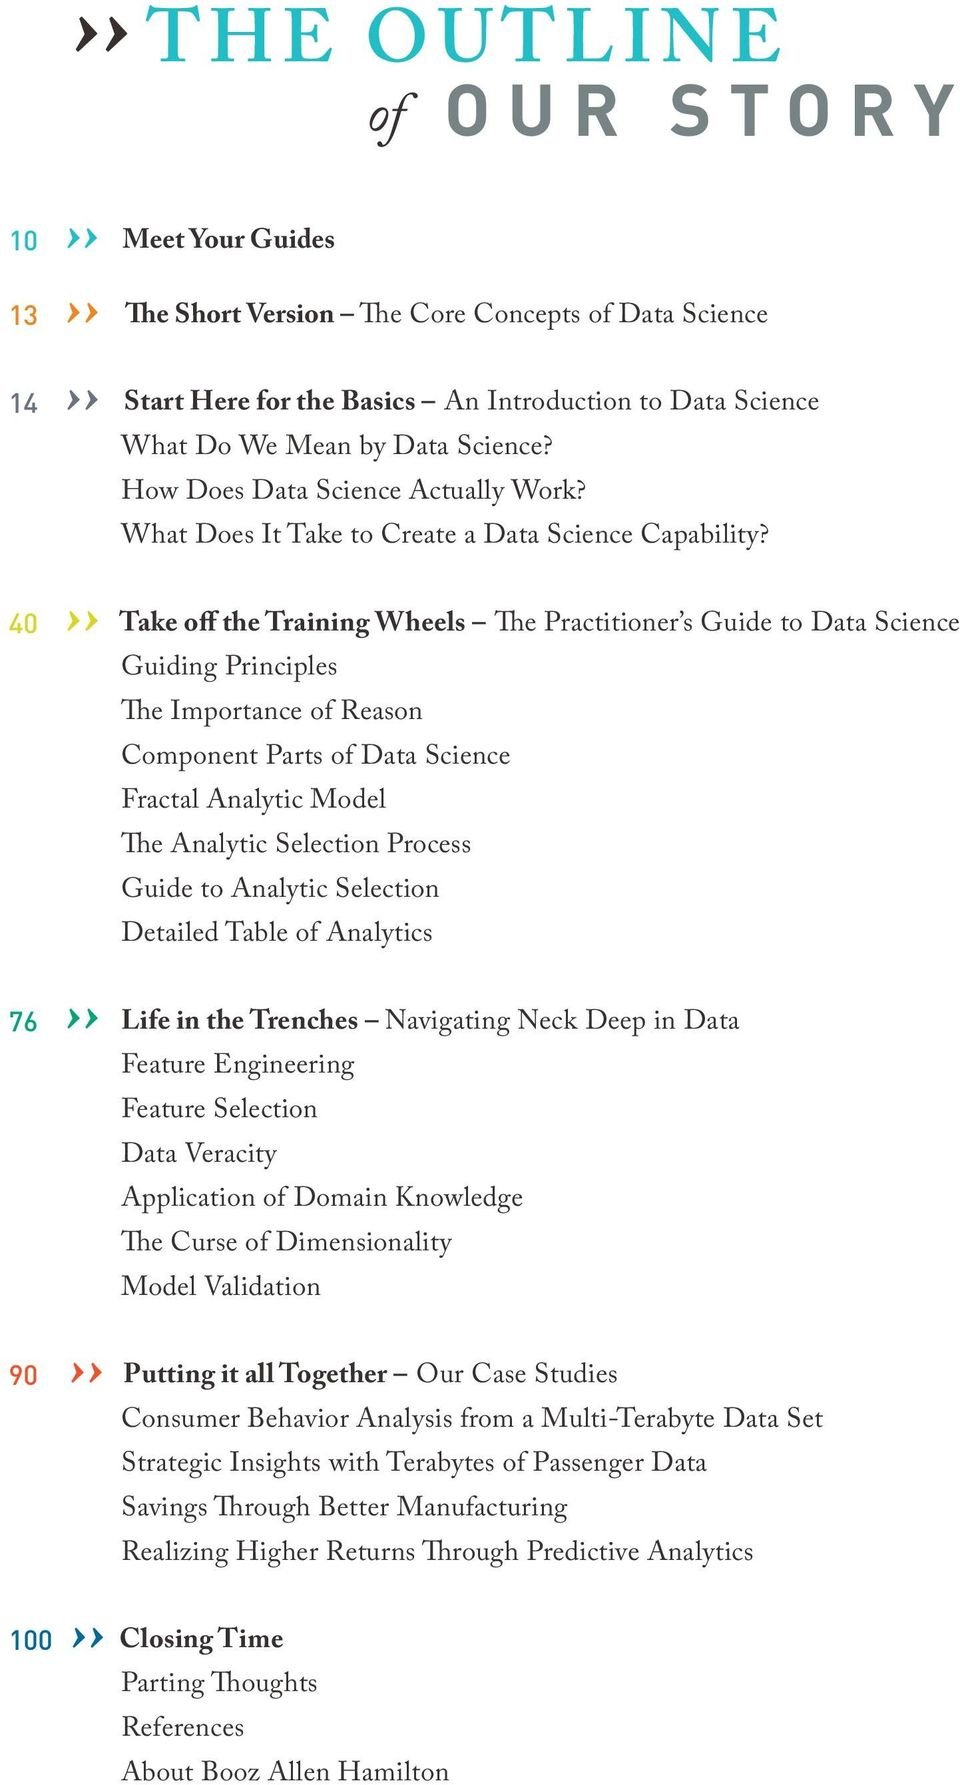 40 Take off the Training Wheels The Practitioner s Guide to Data Science Guiding Principles The Importance of Reason Component Parts of Data Science Fractal Analytic Model The Analytic Selection